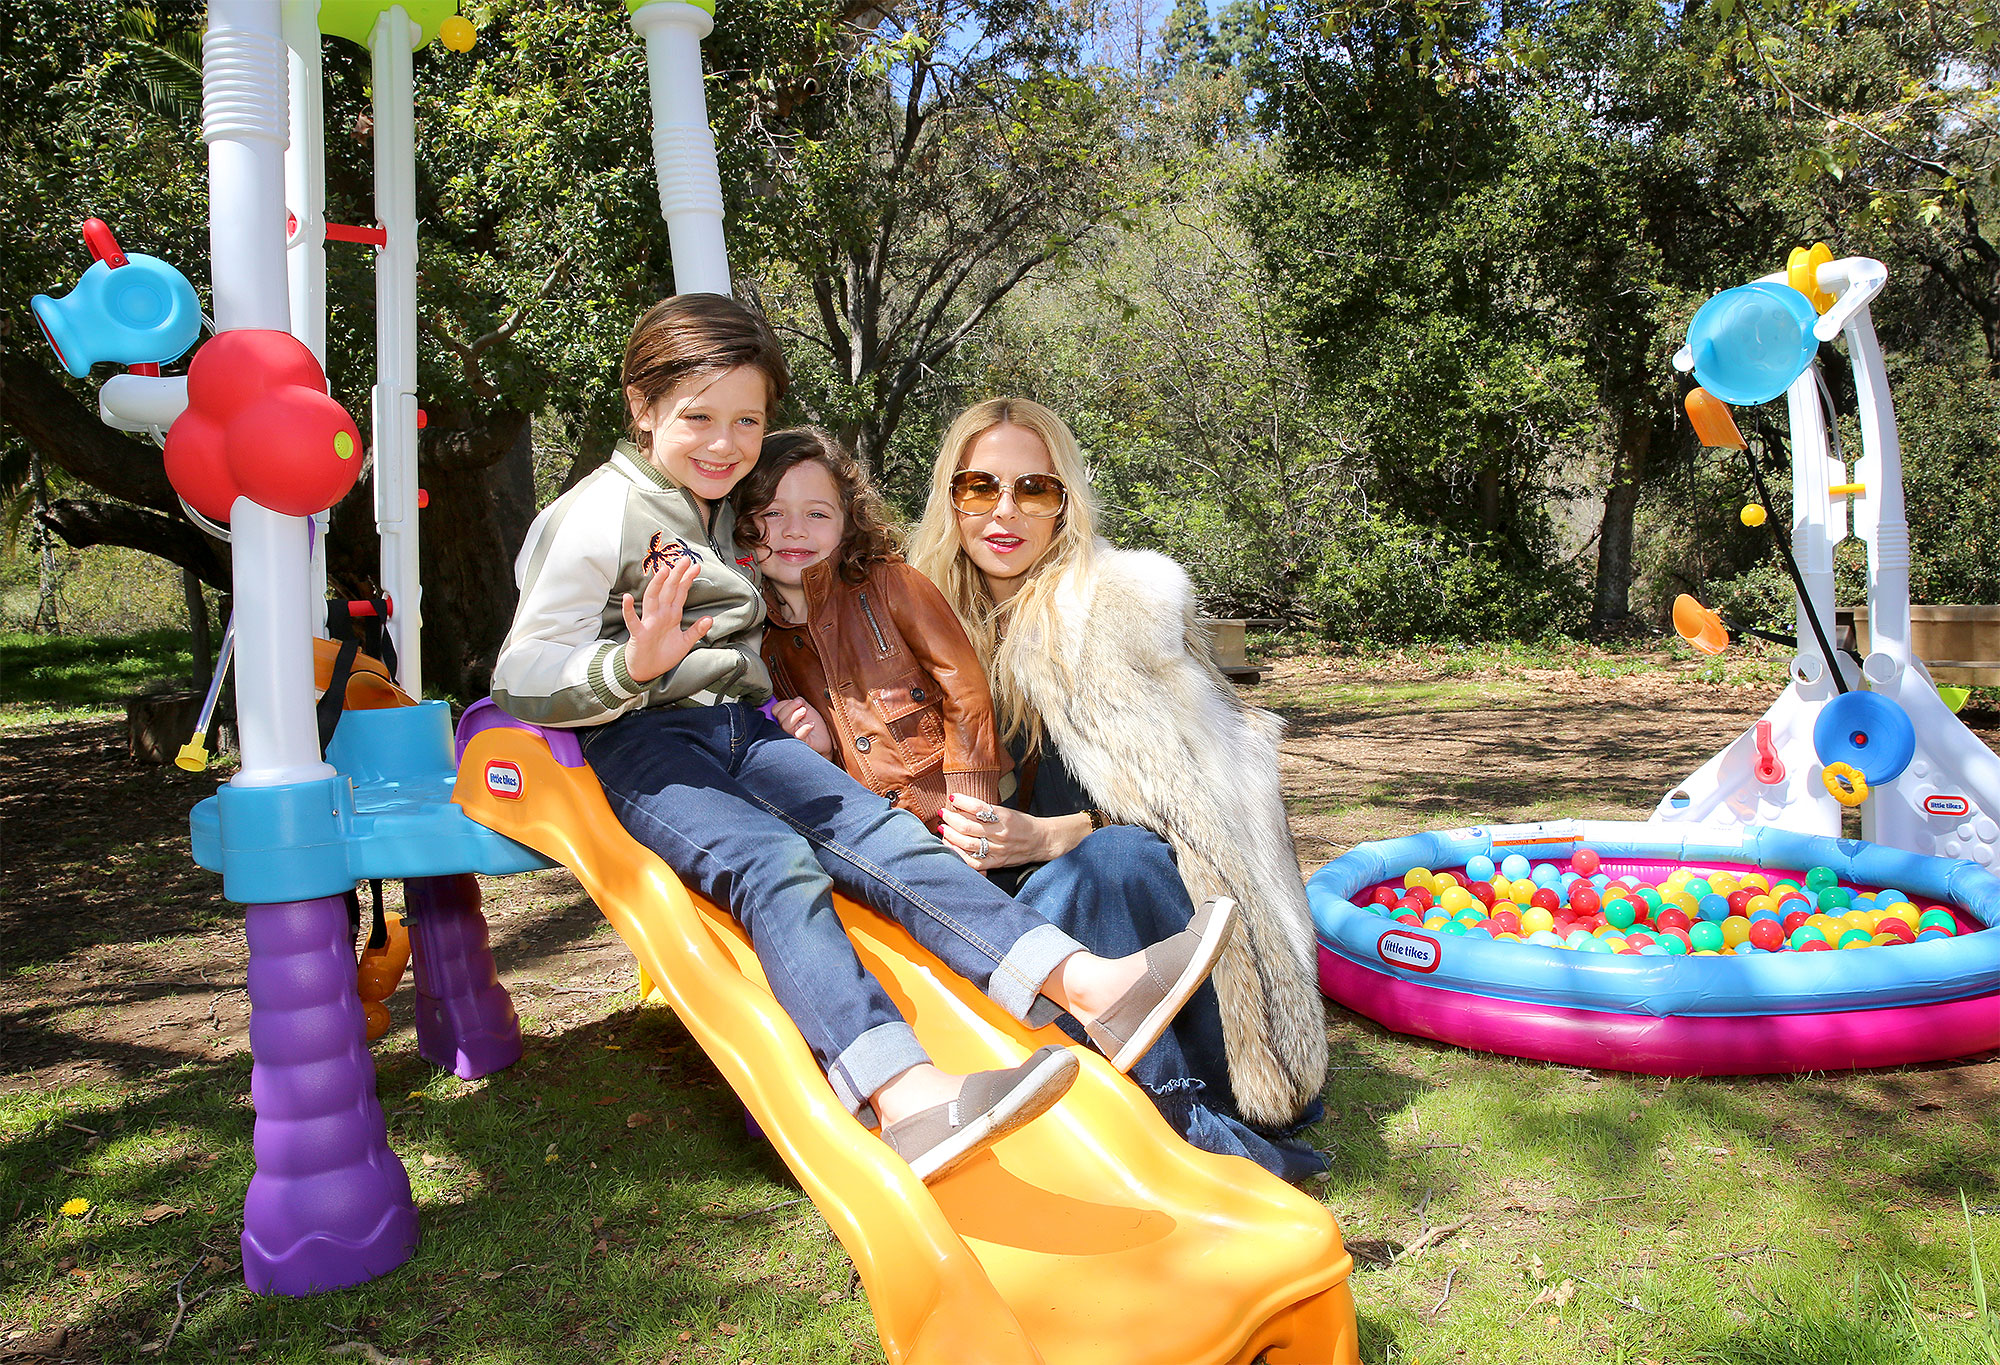 Rachel Zoe Celebrates Son Skyler's Birthday with Little Tikes x Fun Zone